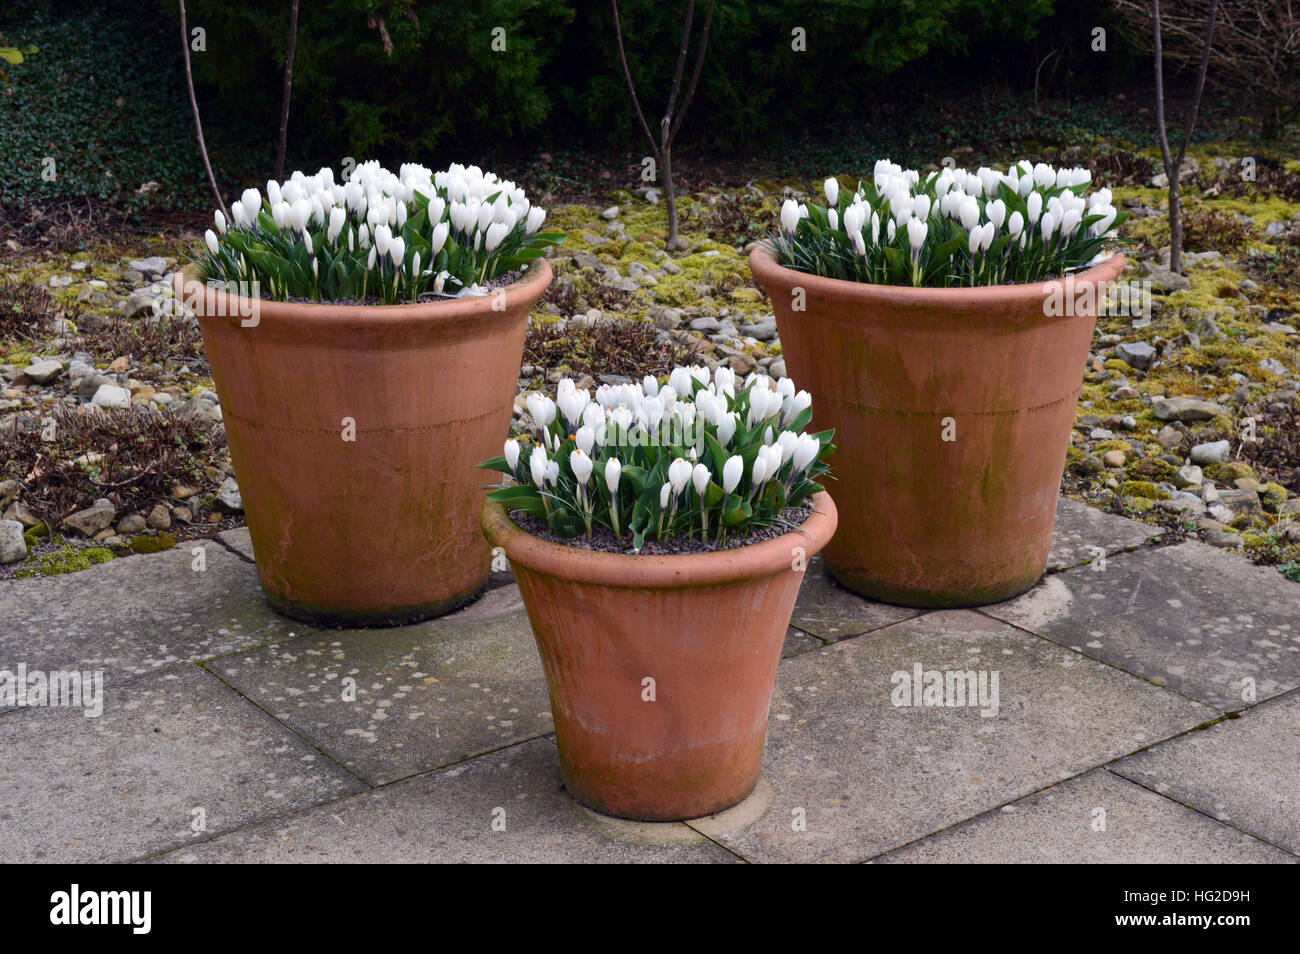 Three Terracotta Containers filled with White Crocus on Display at ...